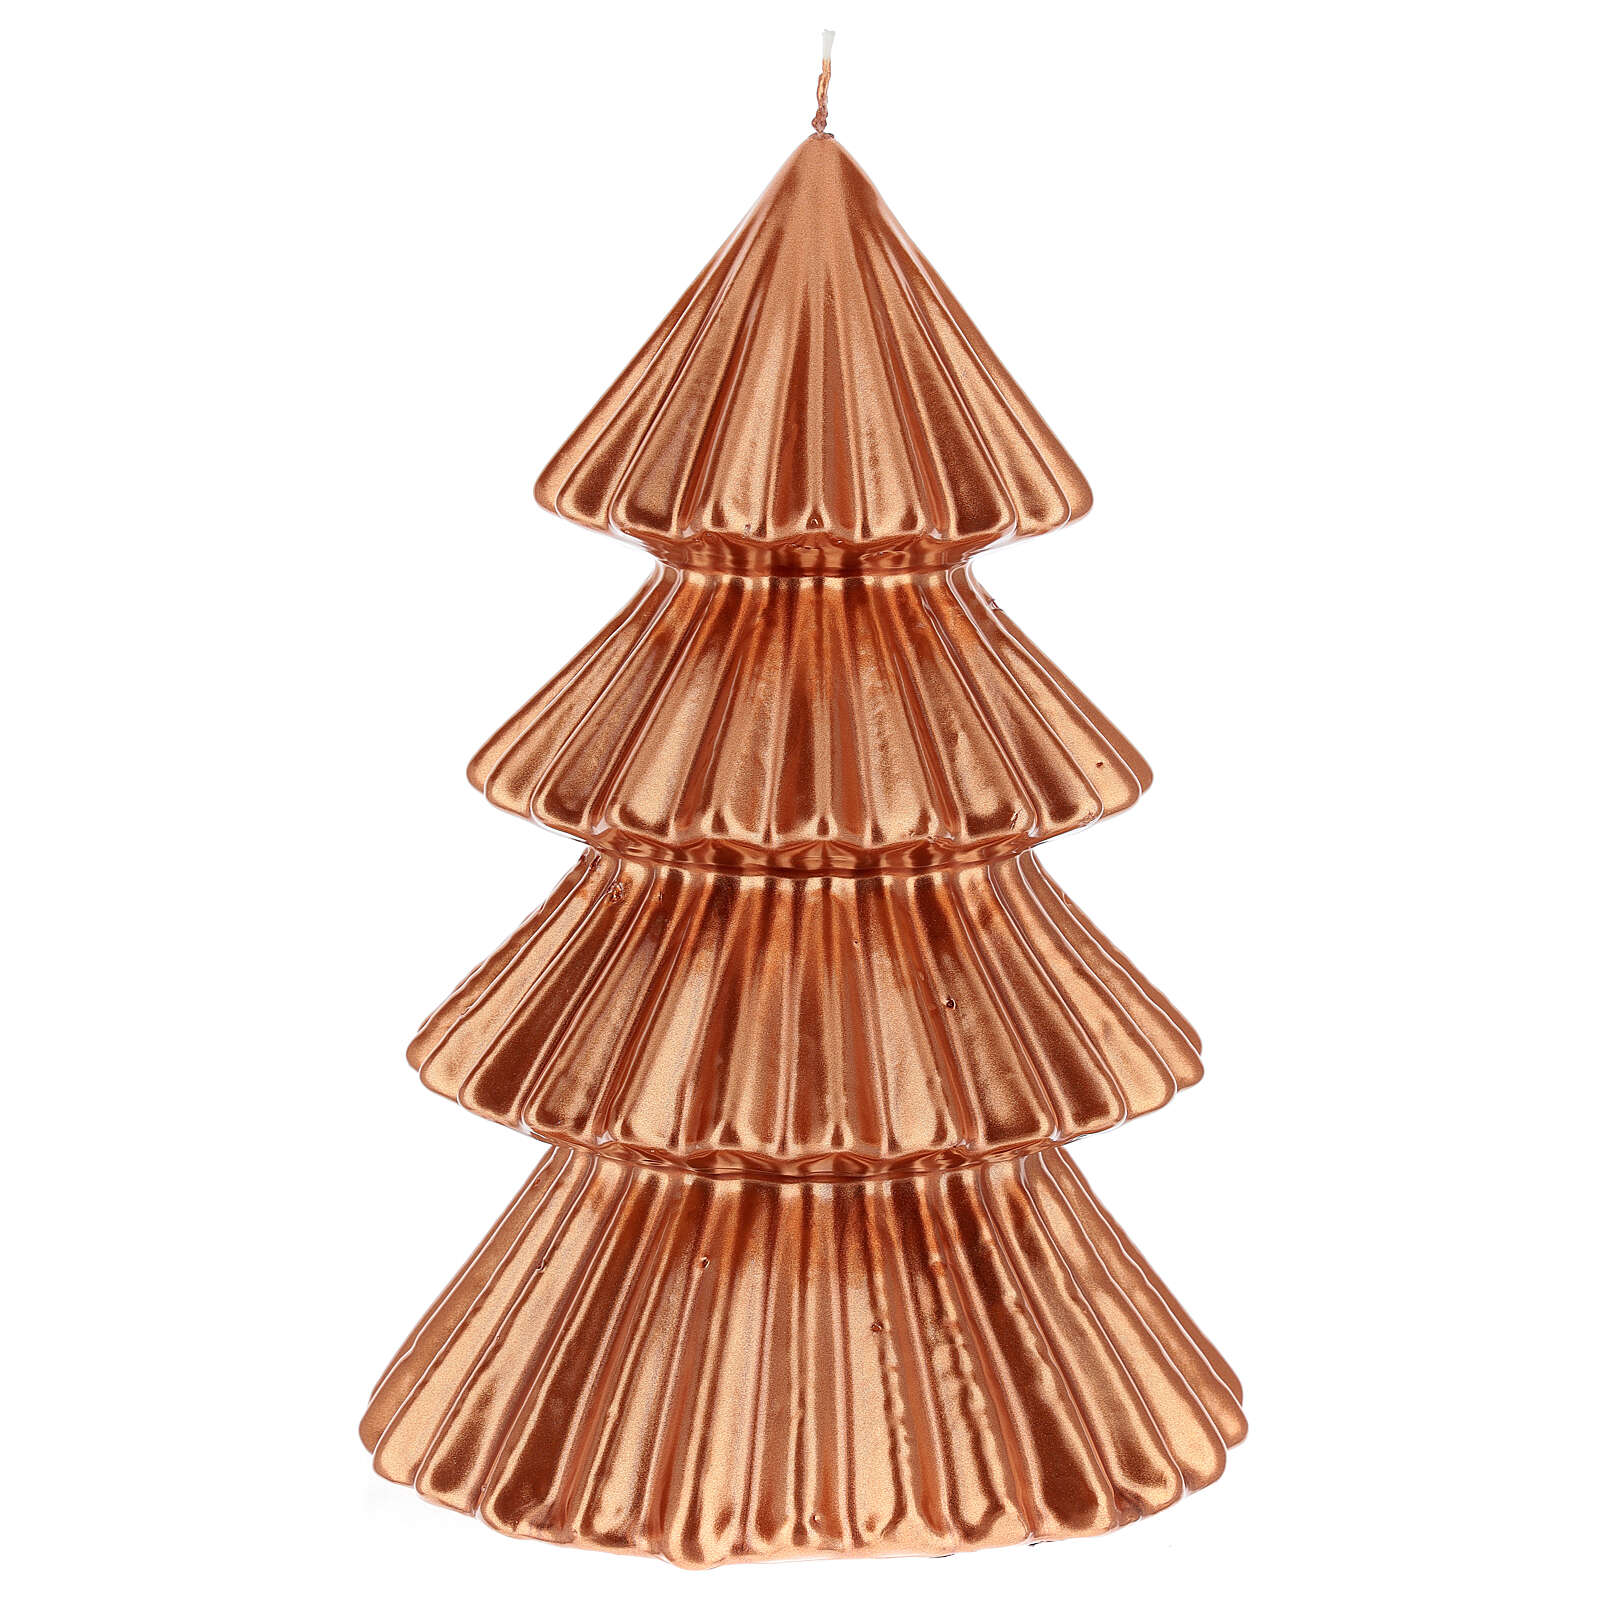 Copper Tokyo Christmas candle tree shape 9 3